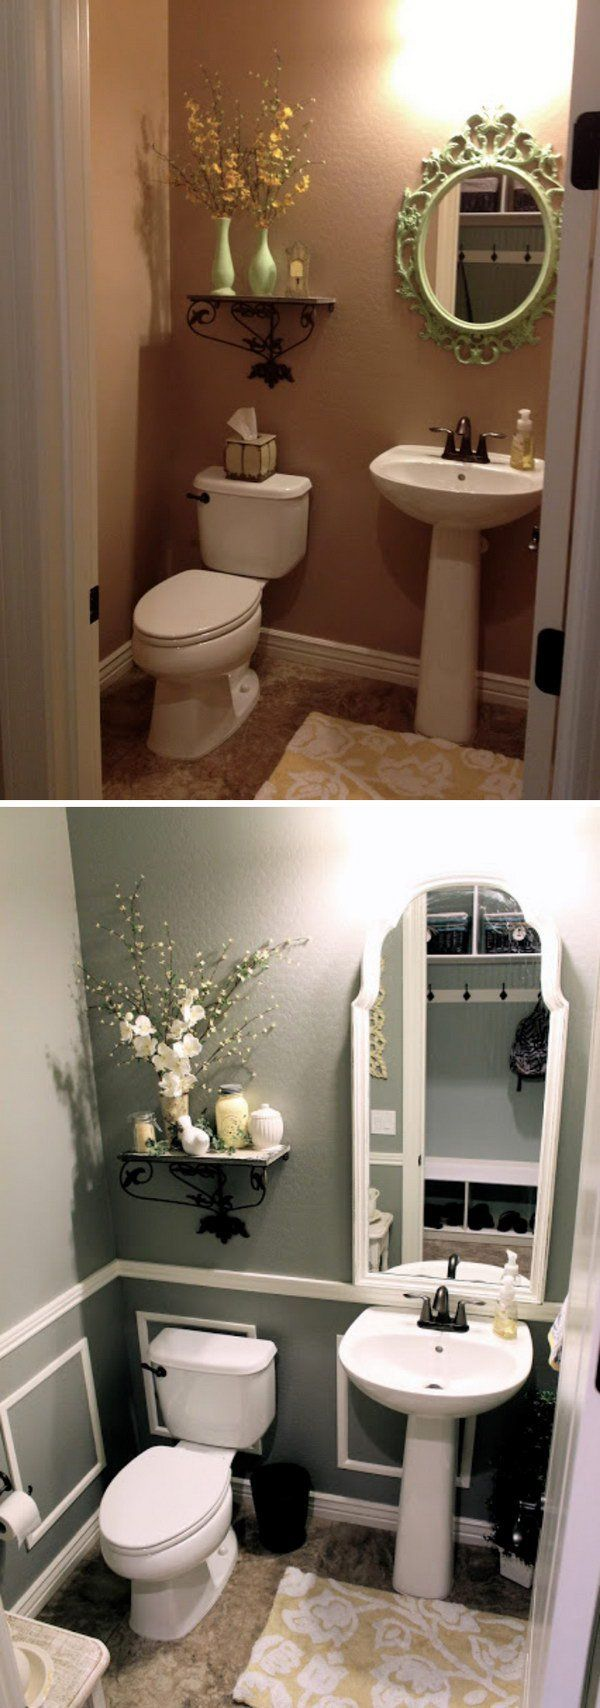 Bathroom Makeovers Belfast best 25+ small bathroom makeovers ideas only on pinterest | small